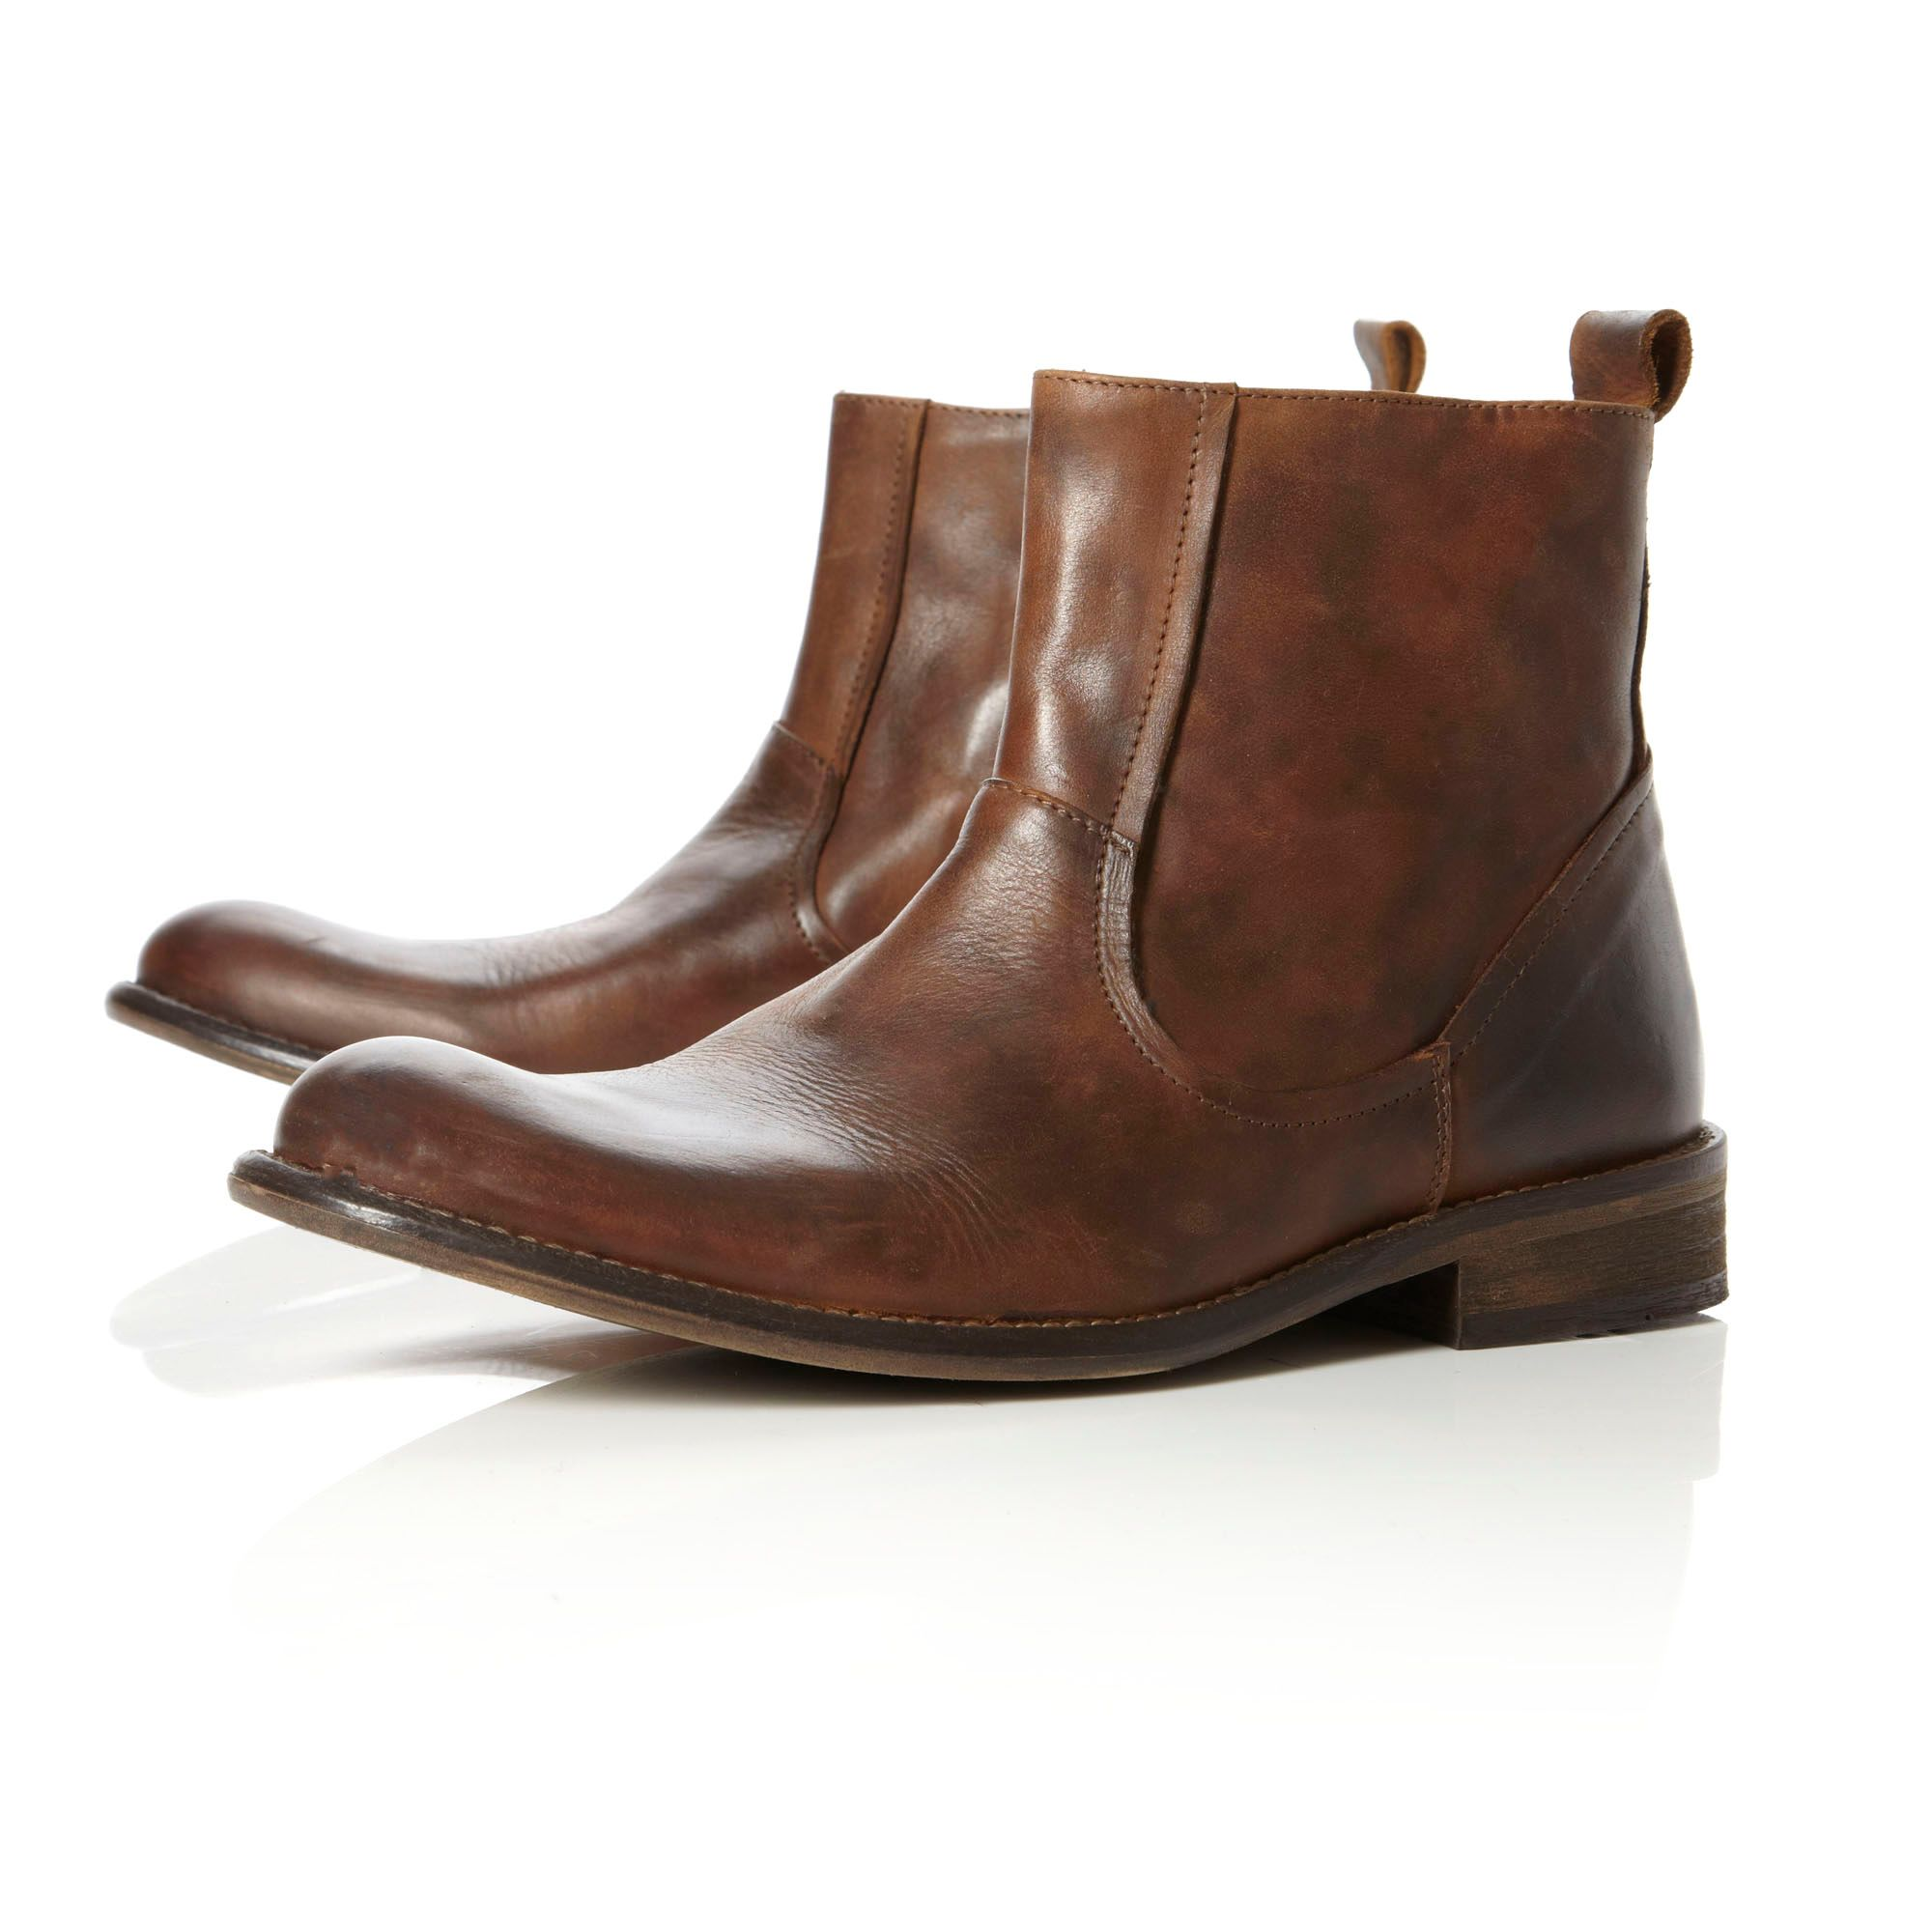 Crowd round toe zip boots